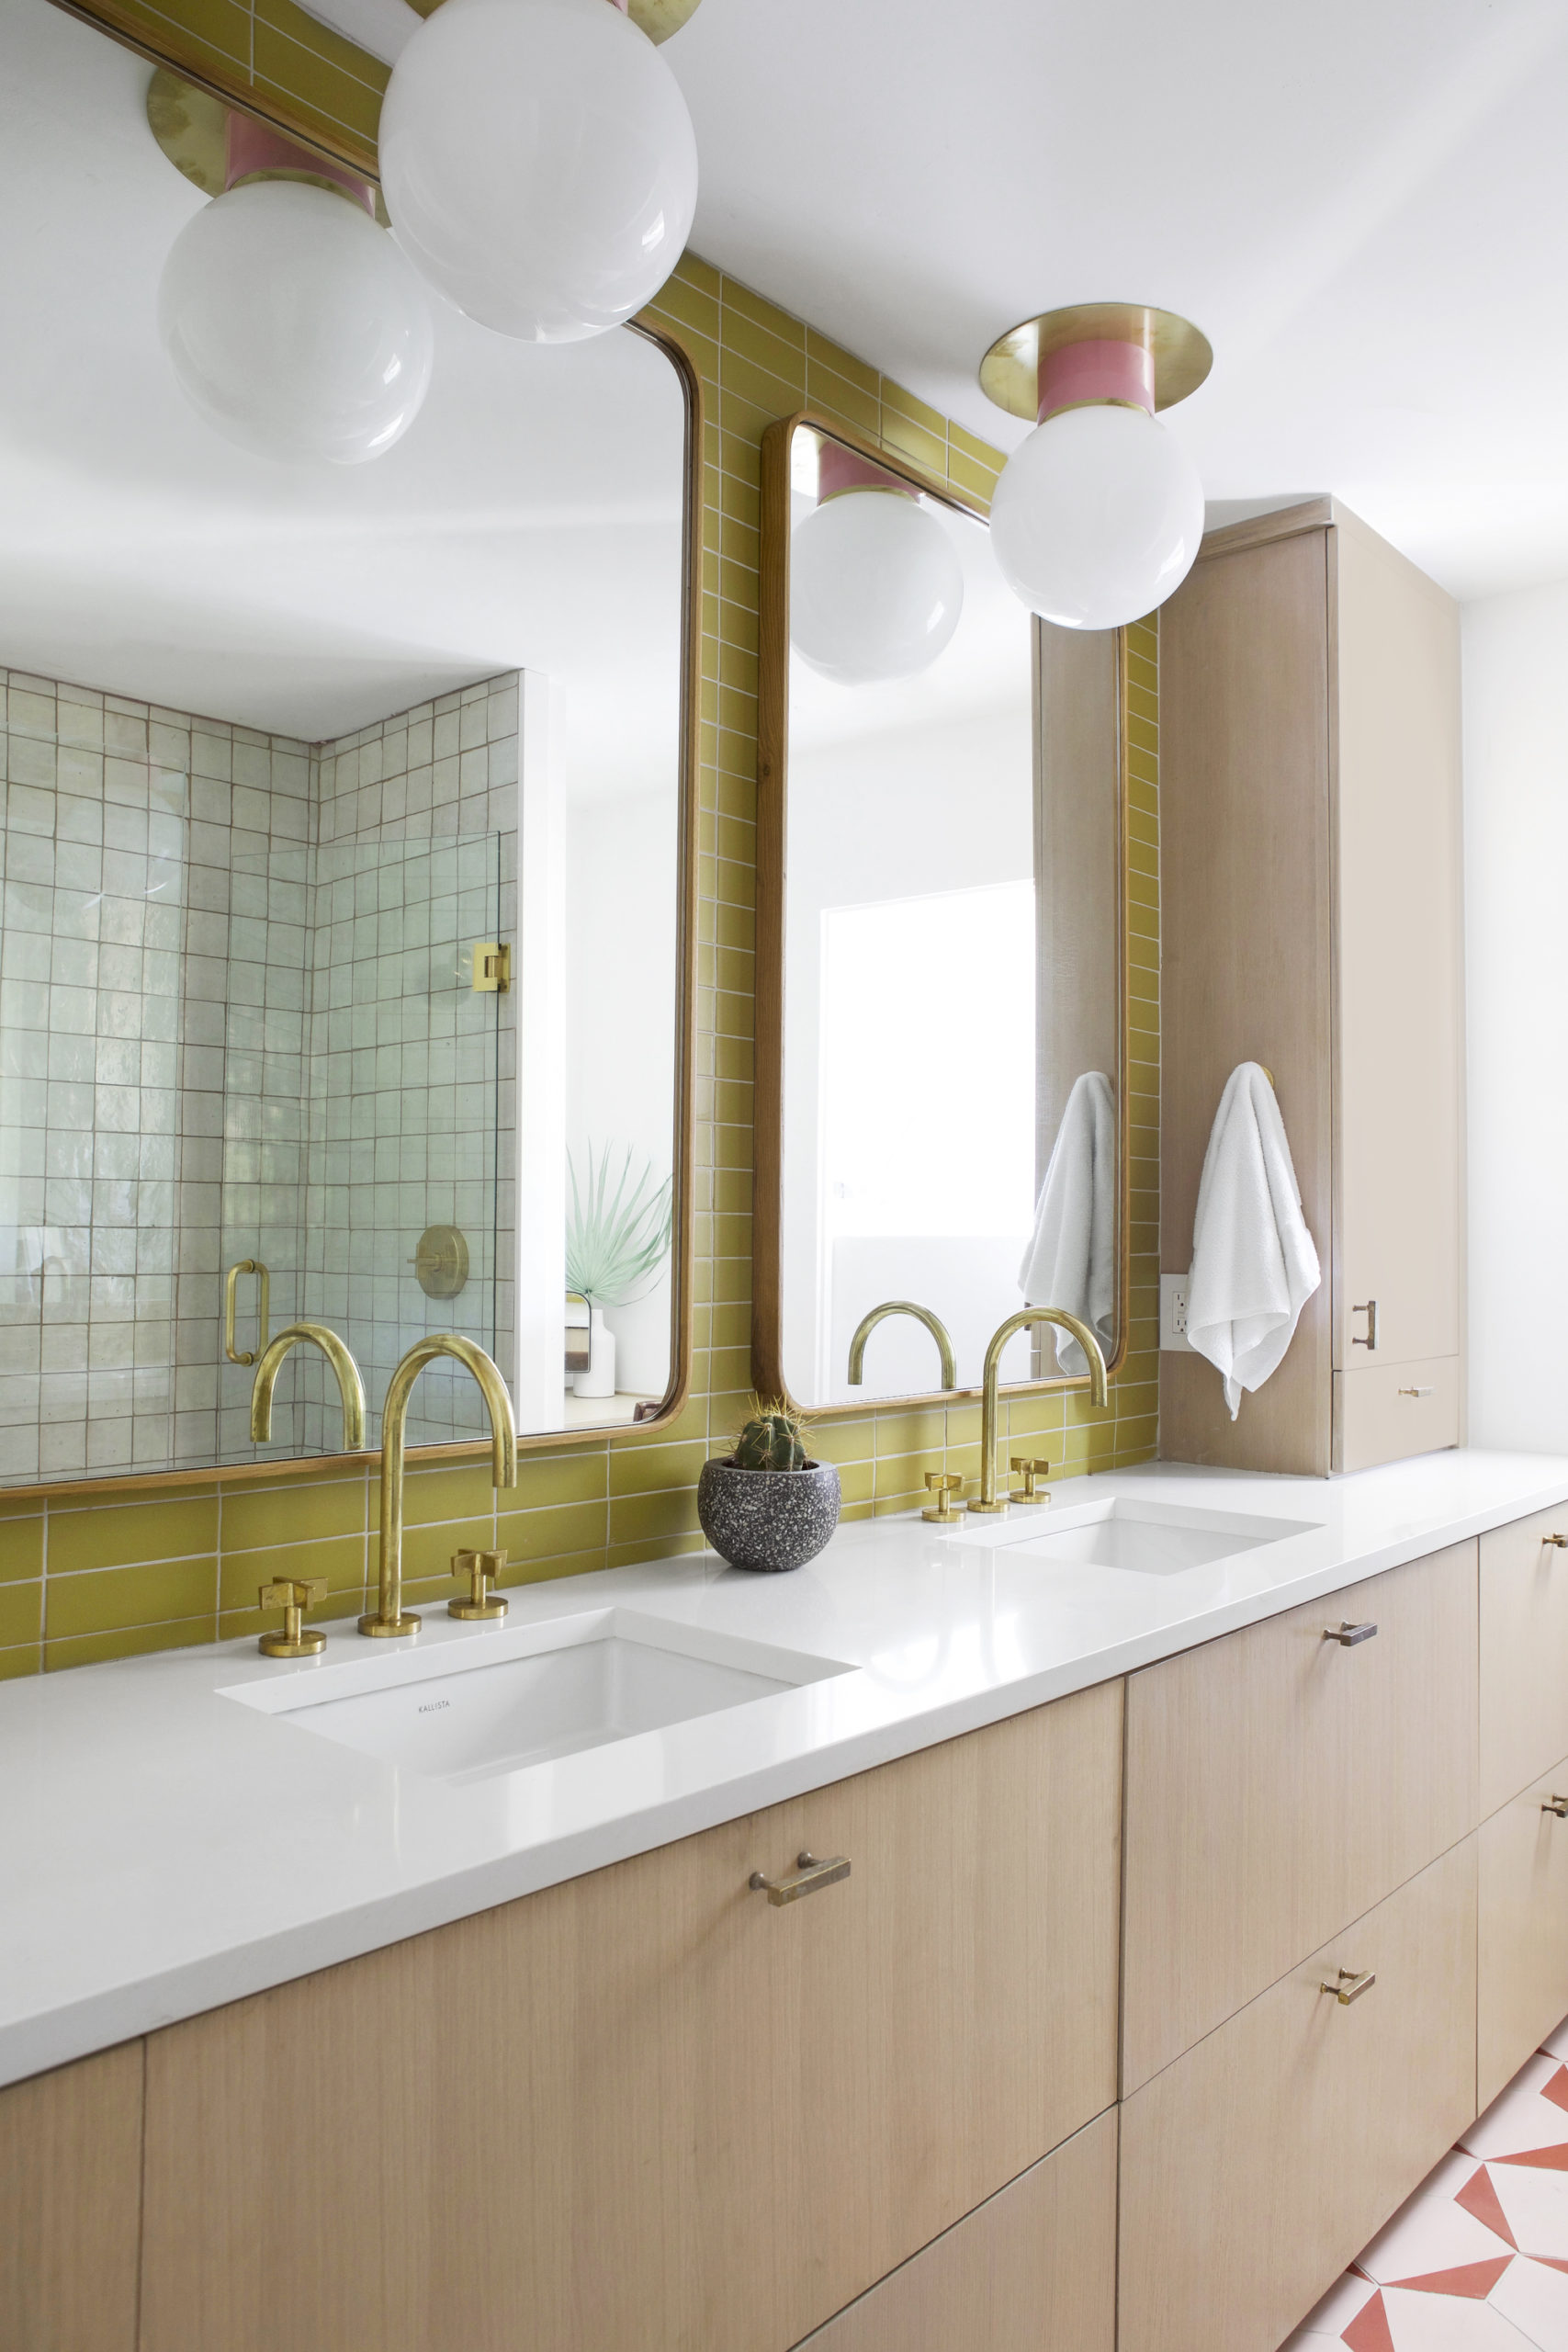 pretty little remodel details the